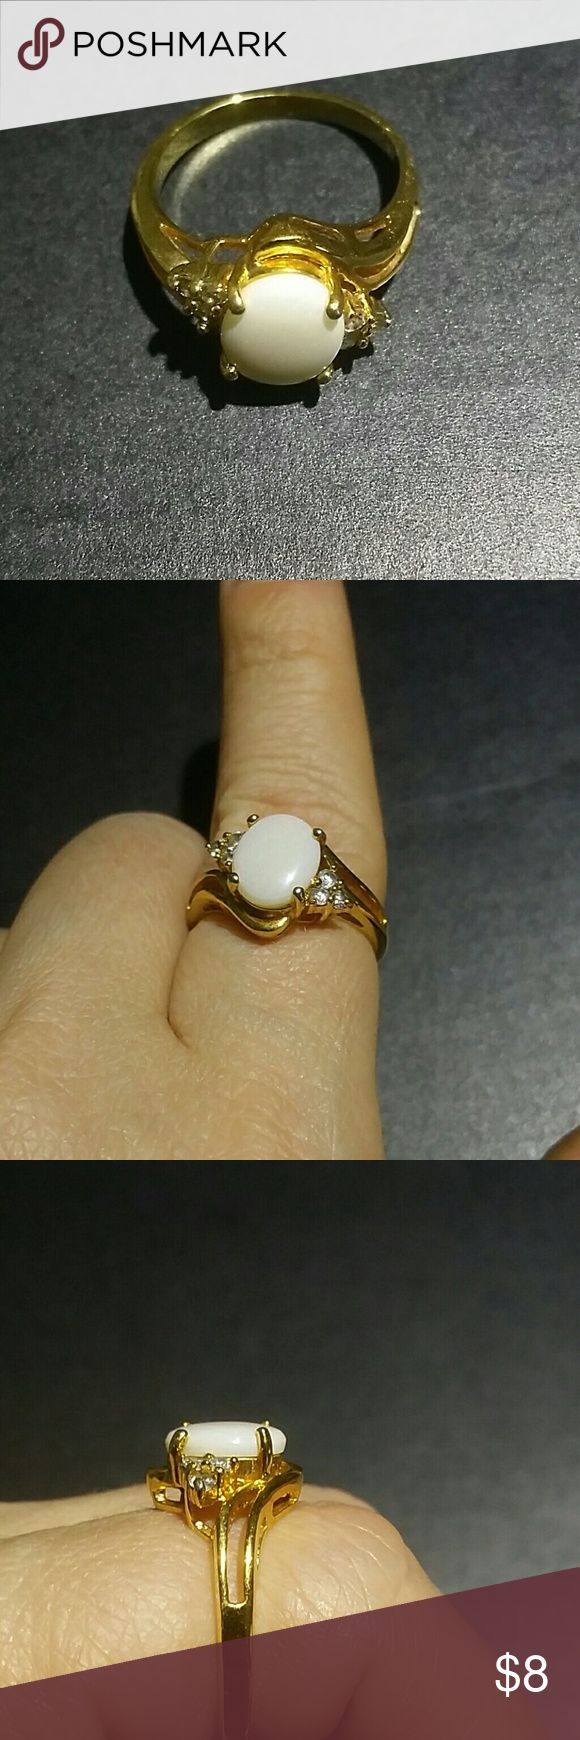 Gold opal ring Gold plated opal imitation not sura about size maybe 7 Vintage Jewelry